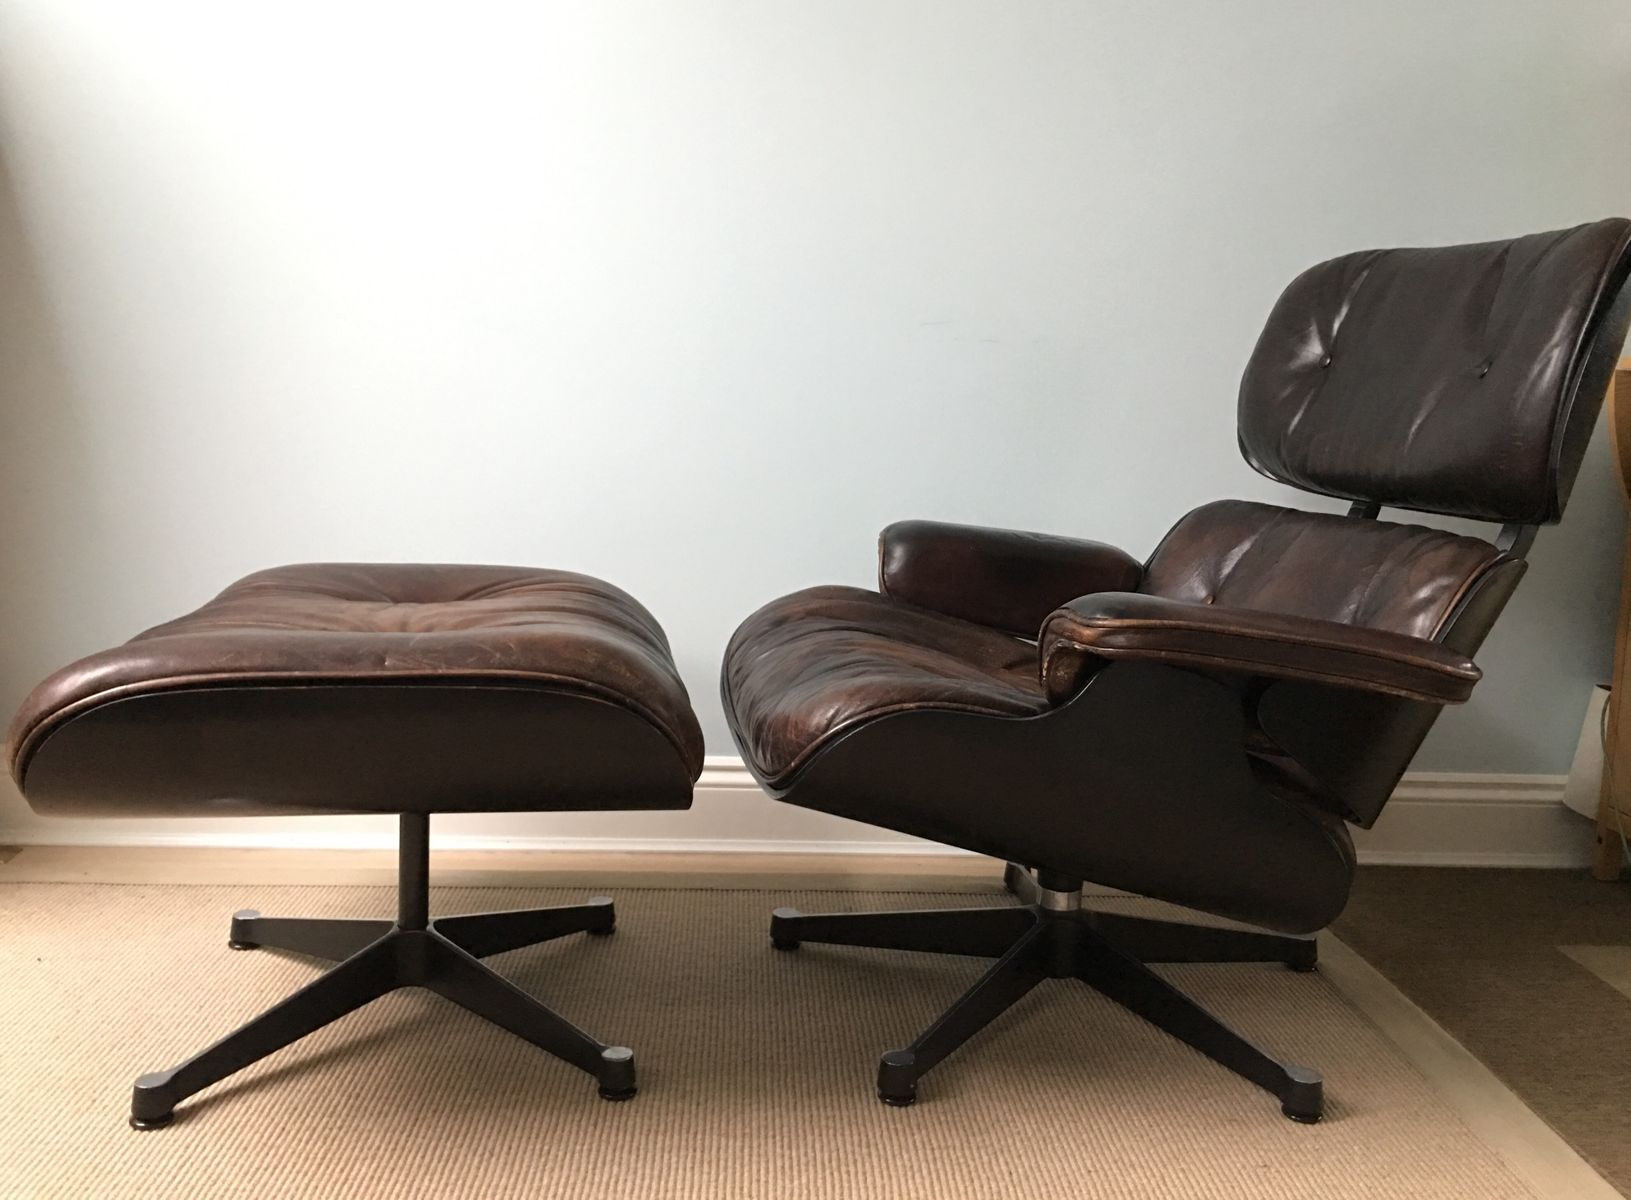 vintage 670 sessel und 671 ottoman von charles und ray eames f r vitra bei pamono kaufen. Black Bedroom Furniture Sets. Home Design Ideas